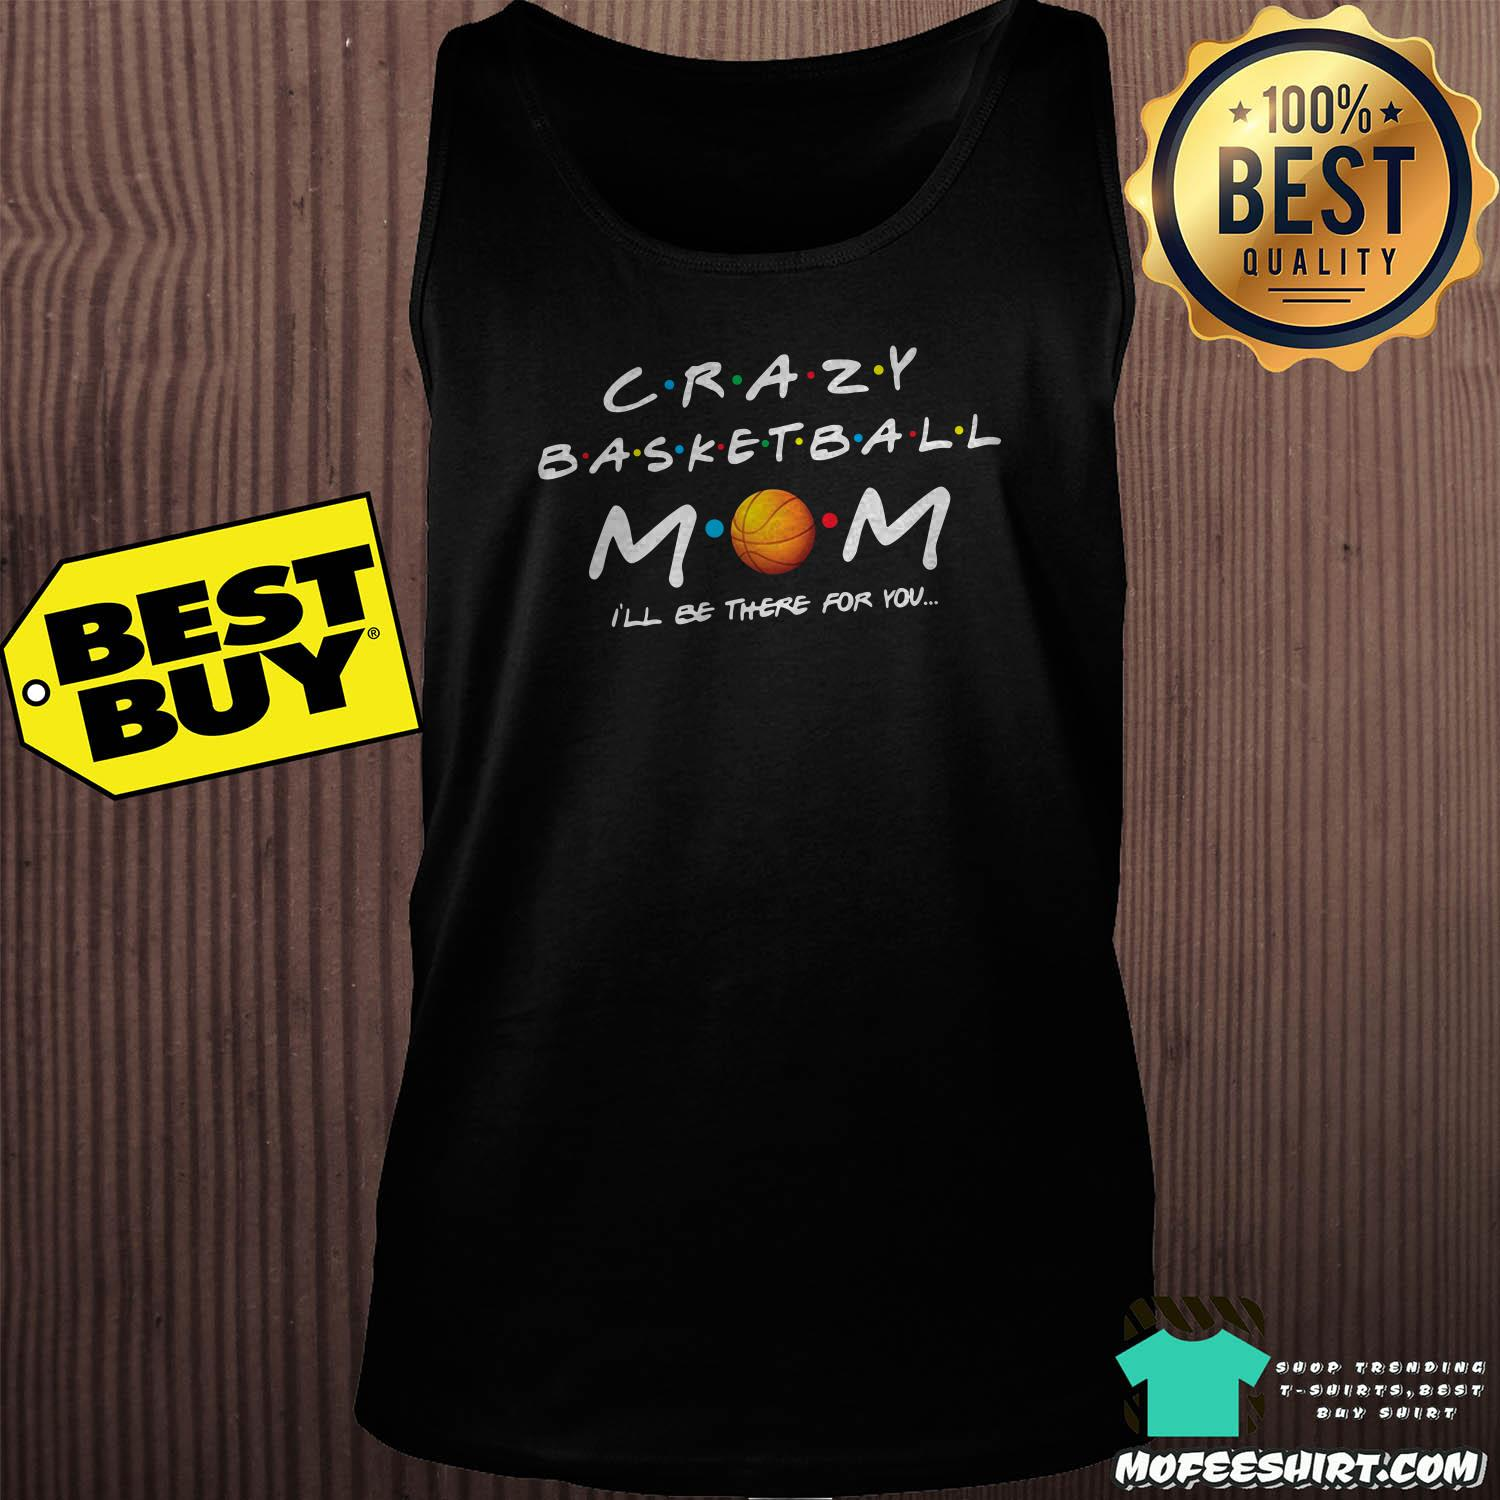 crazy basketball mom ill be there for you shirttank top - Crazy Basketball MomI'll be there for you shirt